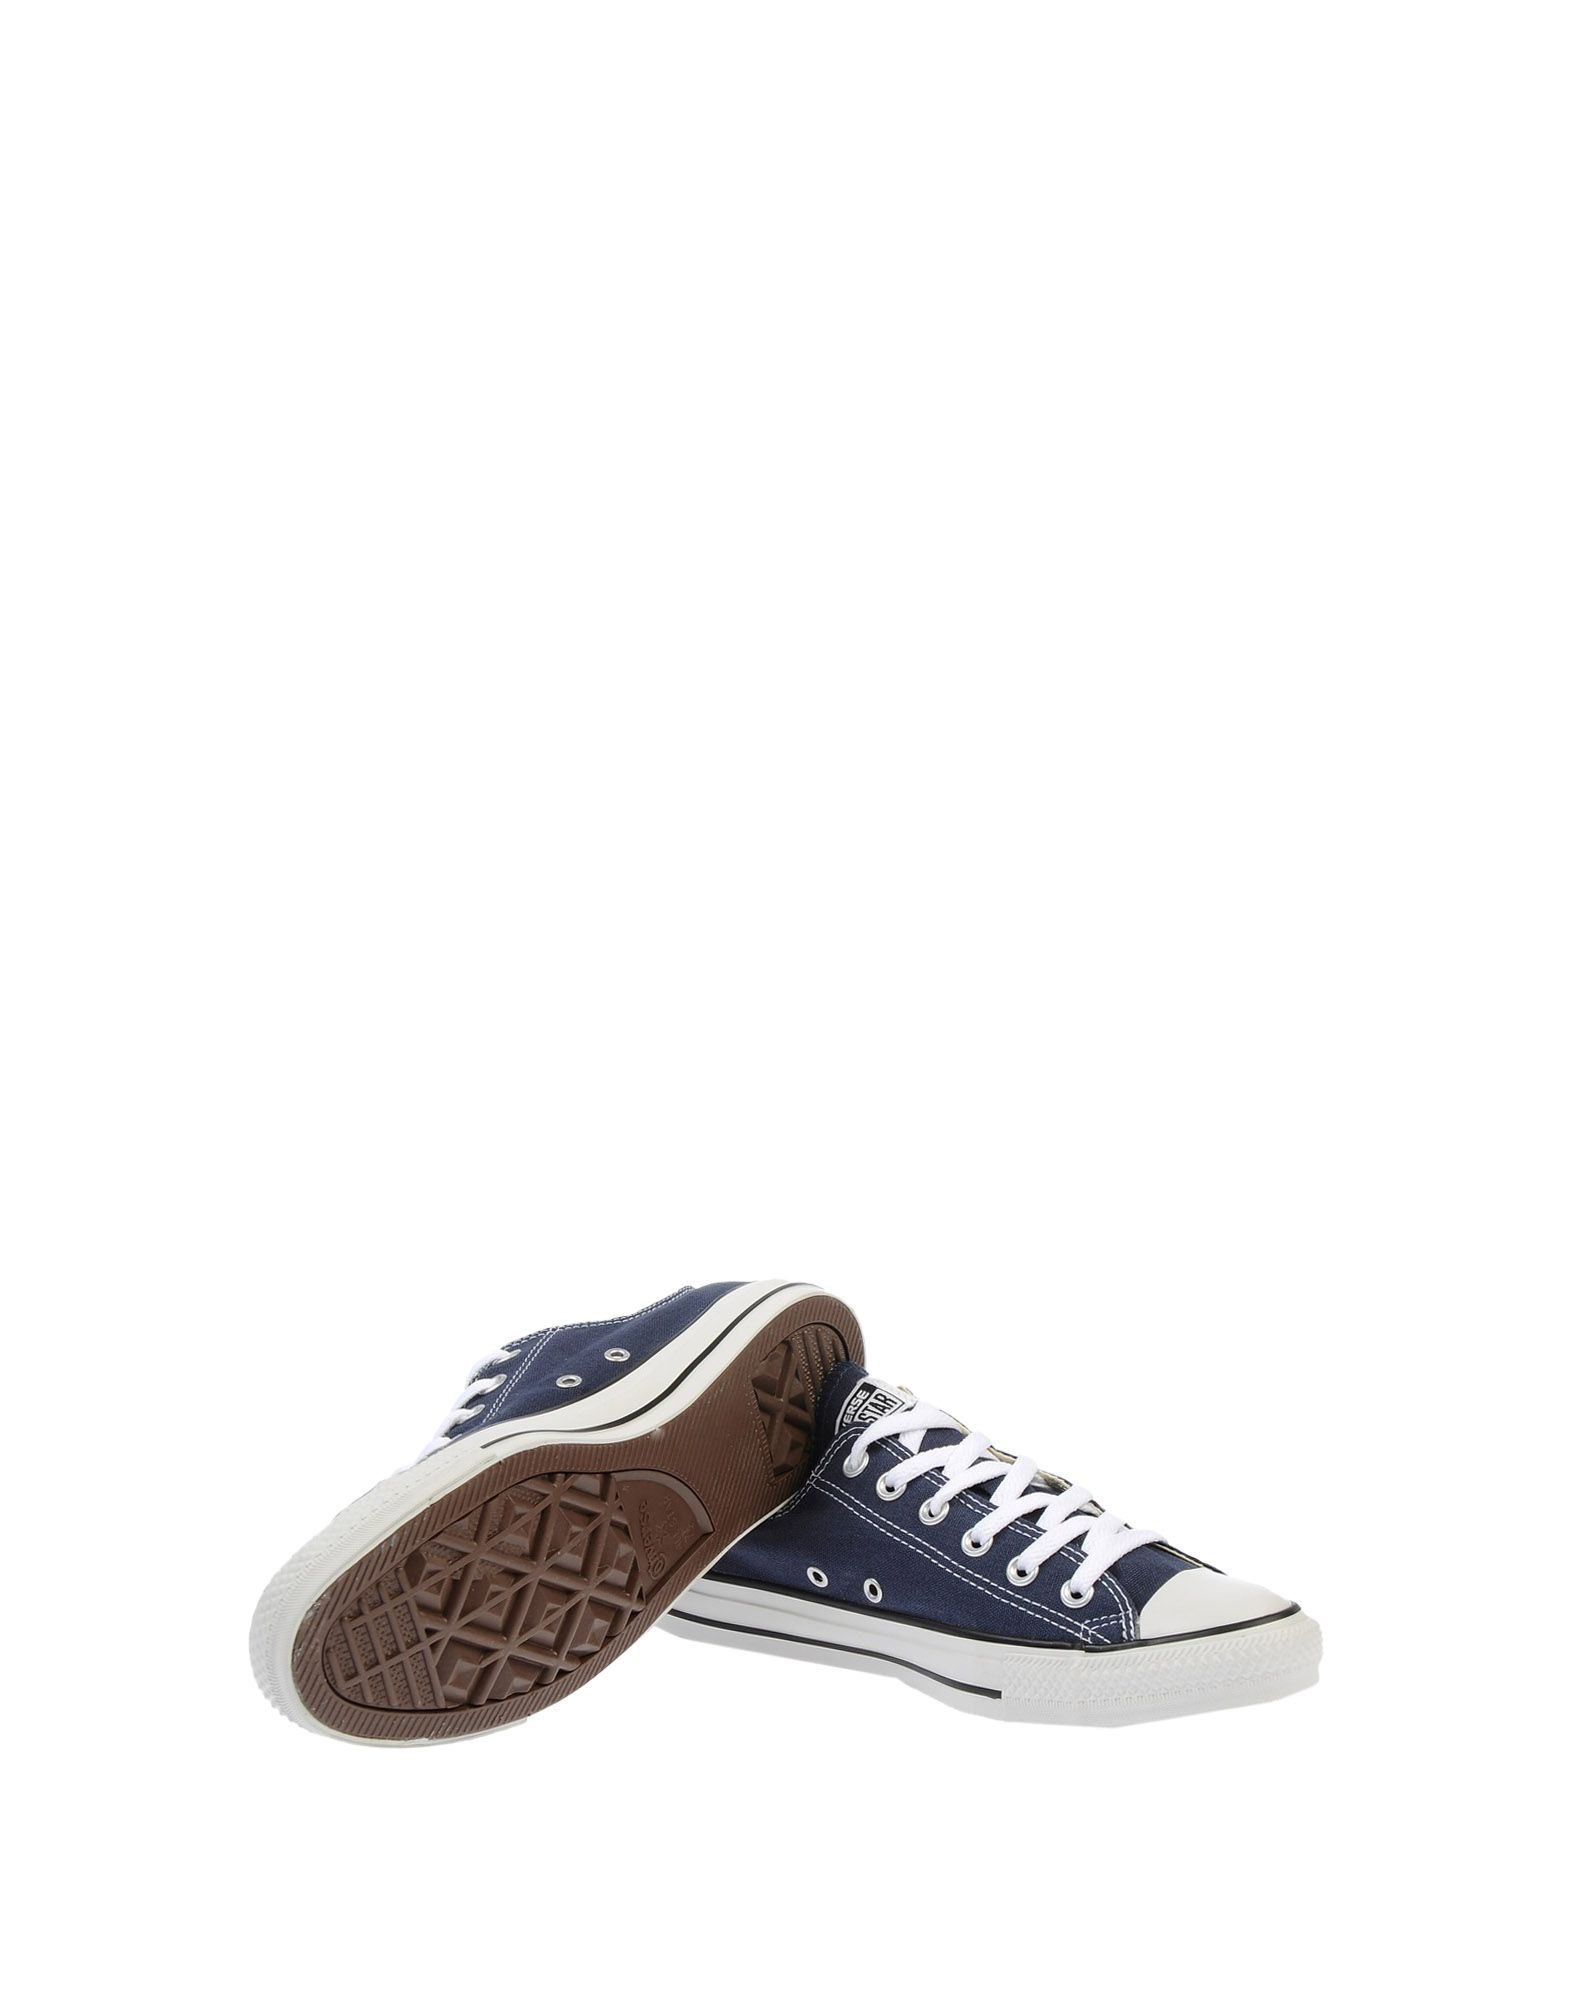 Sneakers Converse All Star All Star Hi-Ox - Homme - Sneakers Converse All Star sur